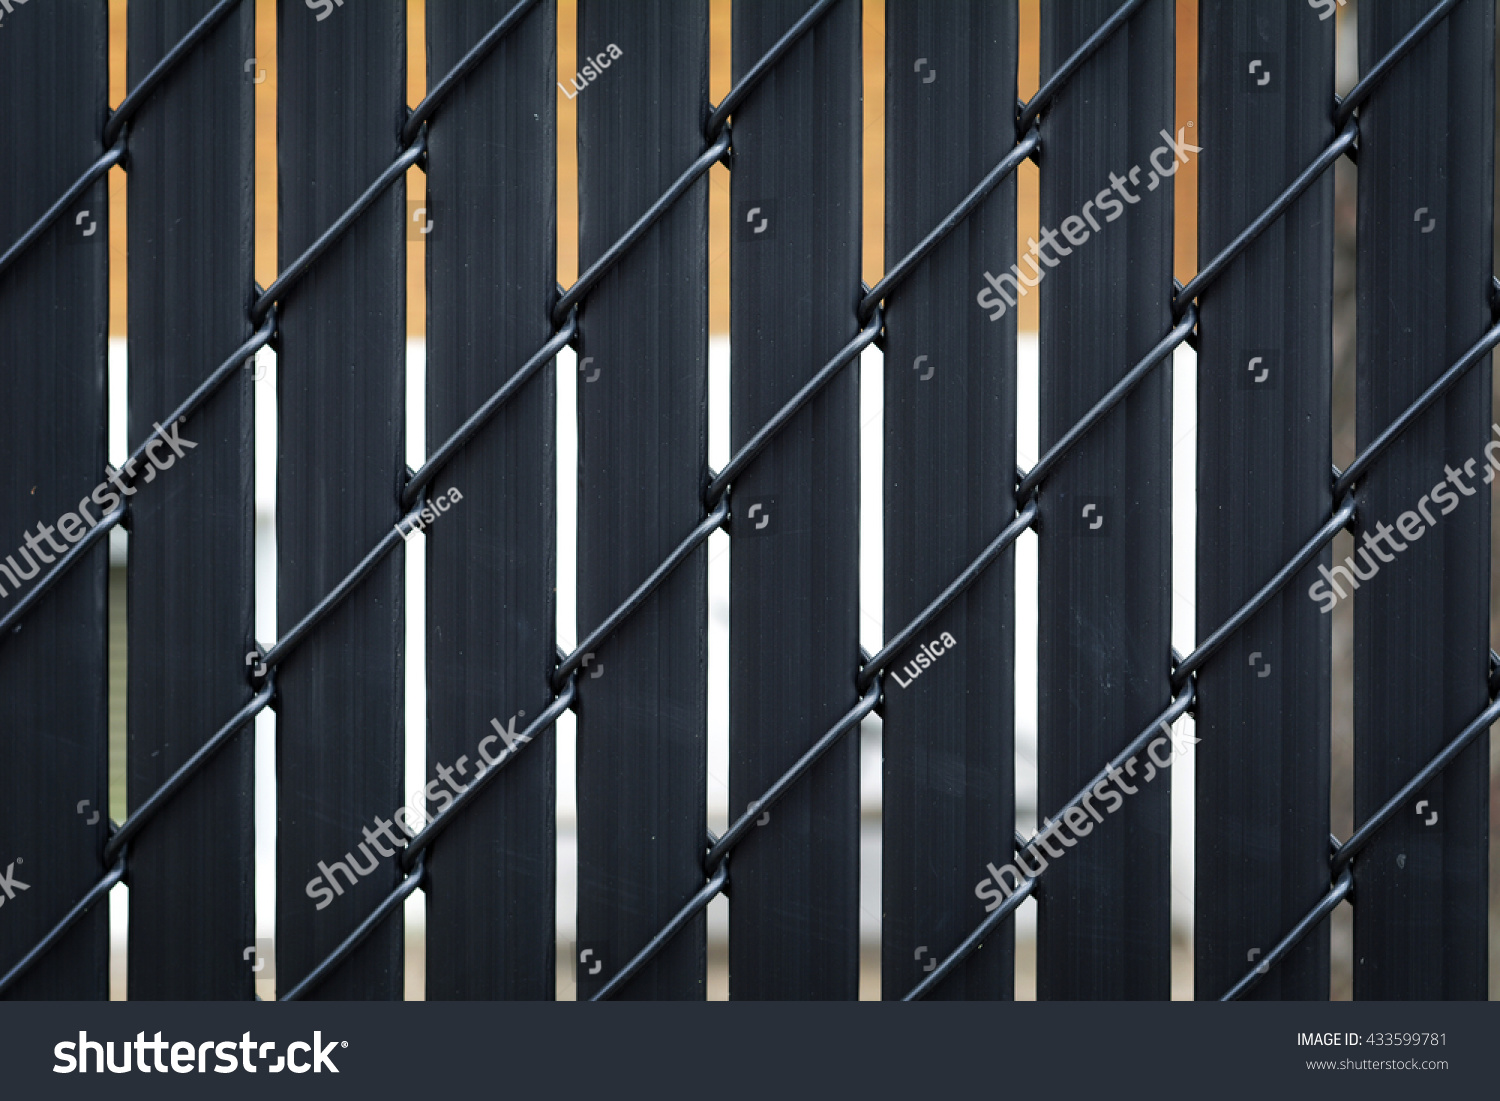 Black metallic fence chain link privacy stock photo